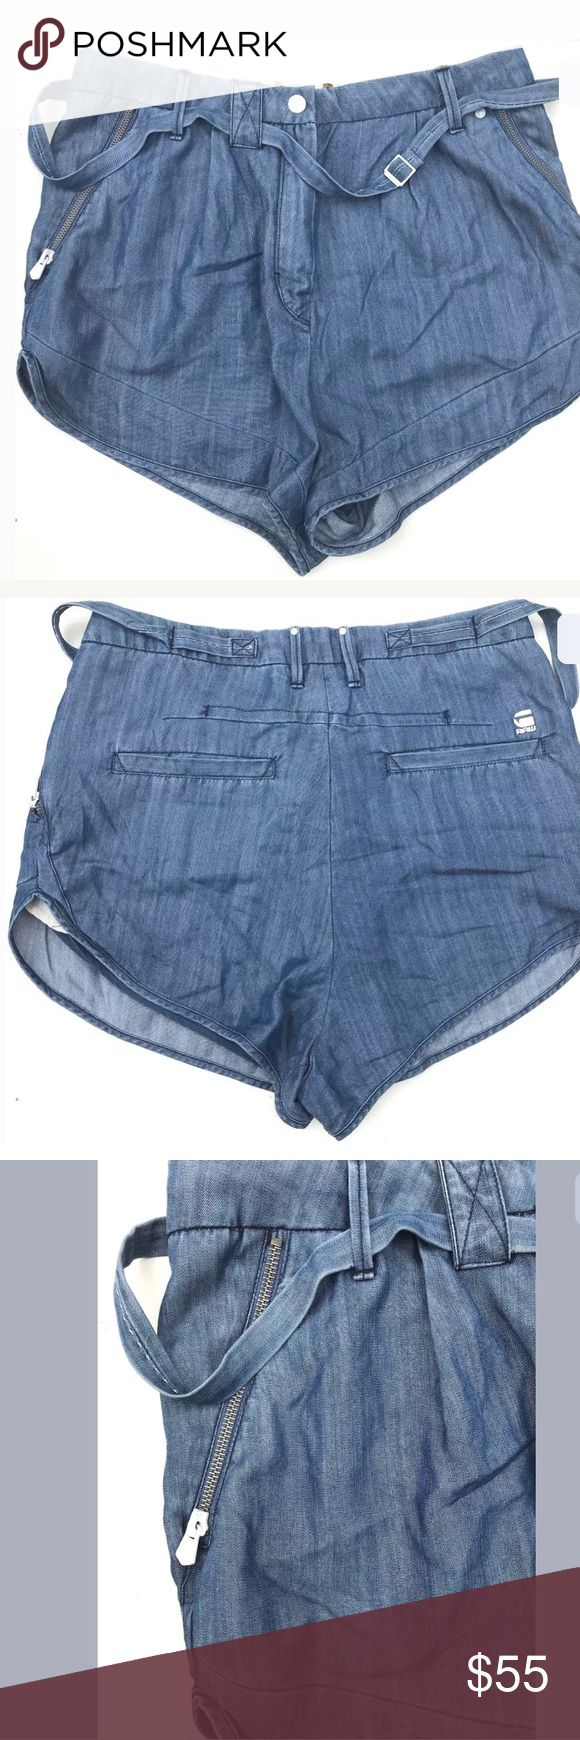 G-Star RAW  CL Belt shorts A classic cut and clean finish lend style to the  Mens Stunning G-Star Raw 'CL BELT.   Comfort arctic denim. Been worn just few times G-Star Shorts Jean Shorts